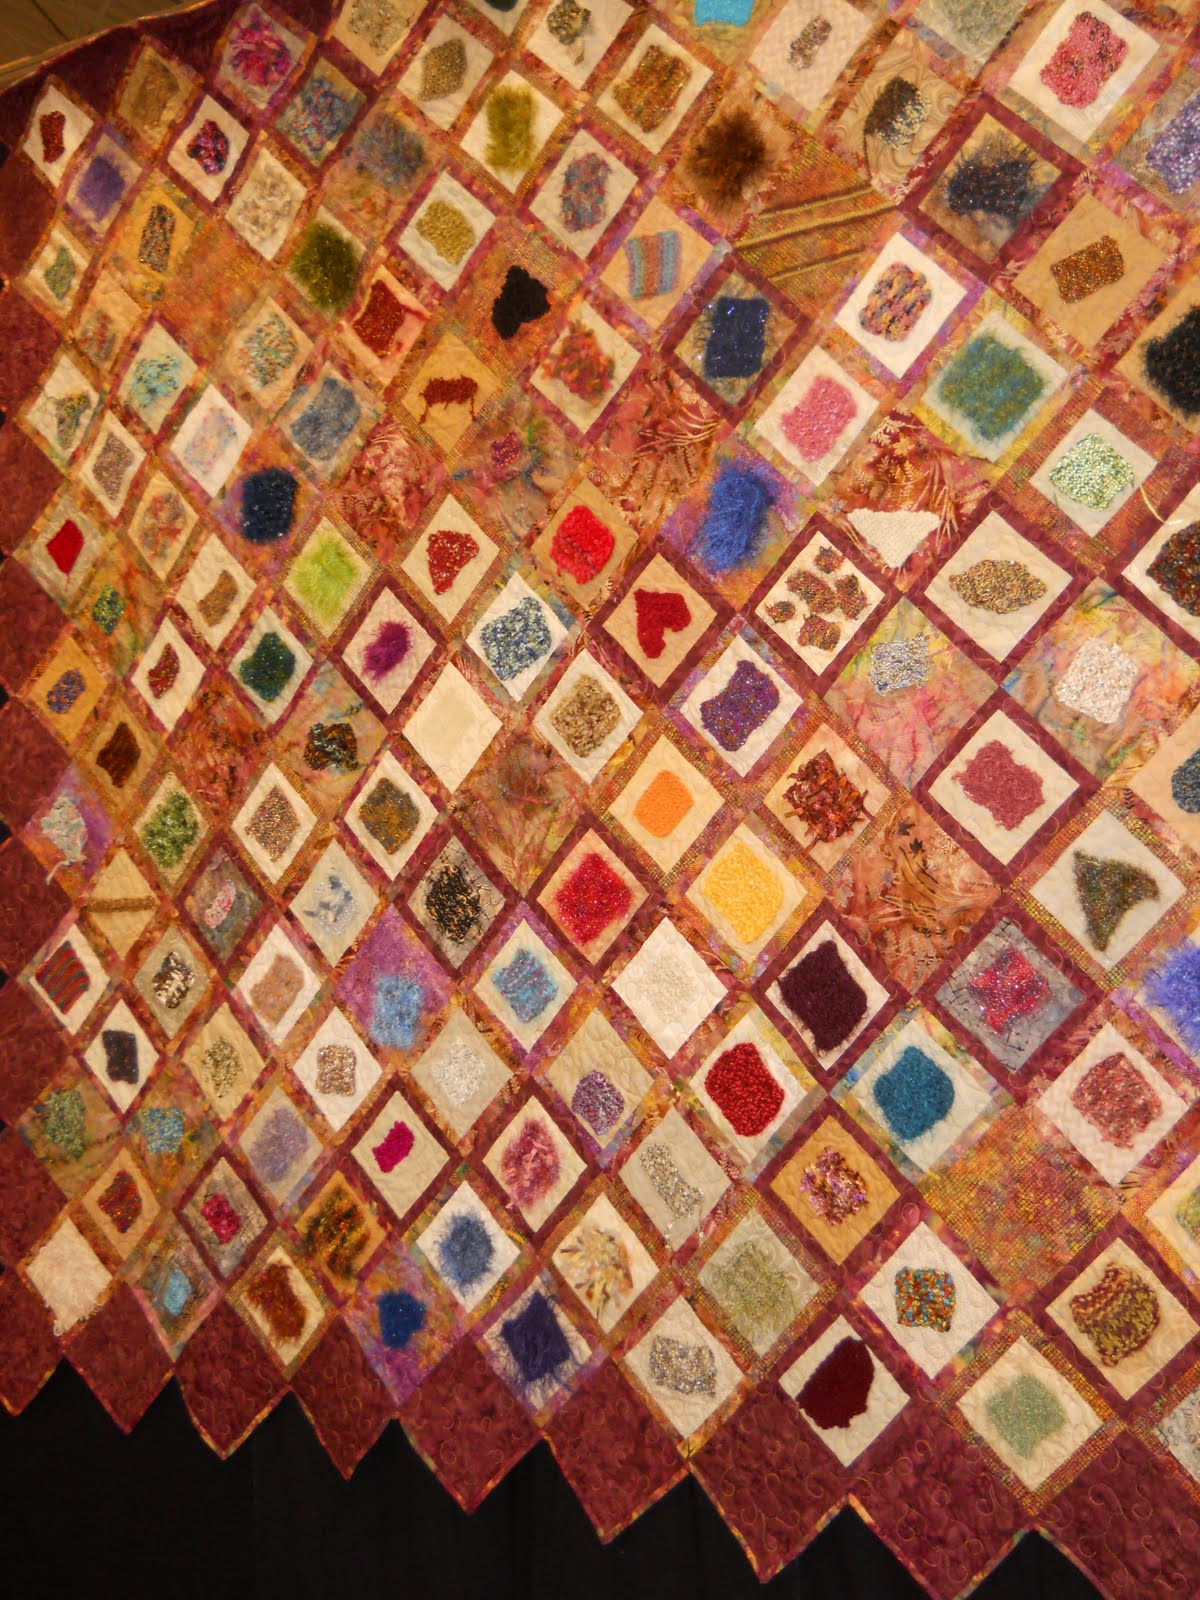 Quilt Stitch In Knitting : Celtic Heart Knitting and Quilting: Quilters Unlimited Quilt Show 2010, ...